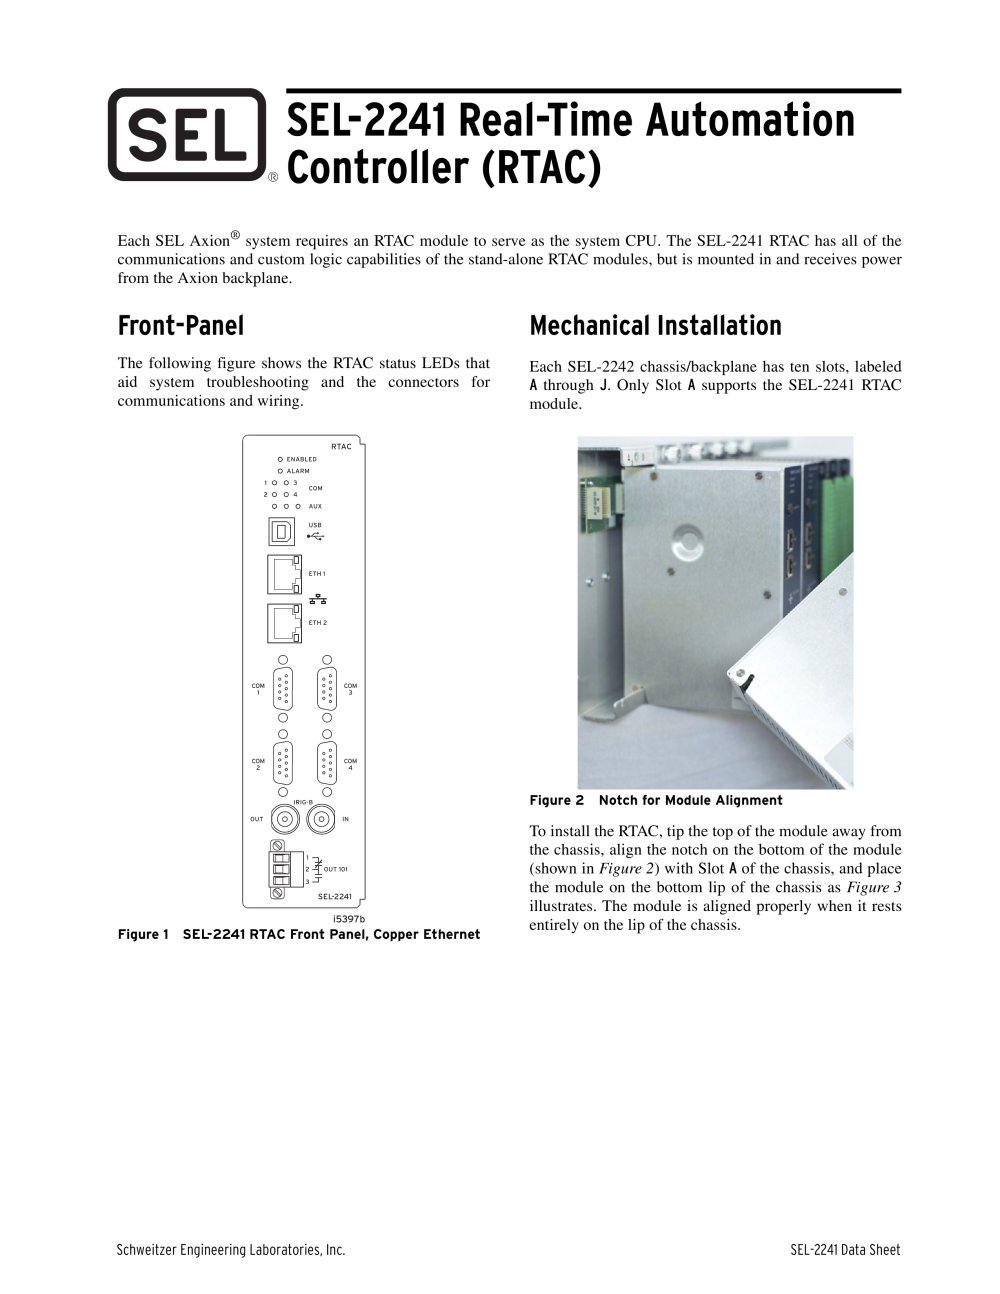 Sel 2241 real time automation controller rtac schweitzer sel 2241 real time automation controller rtac 1 8 pages ccuart Image collections